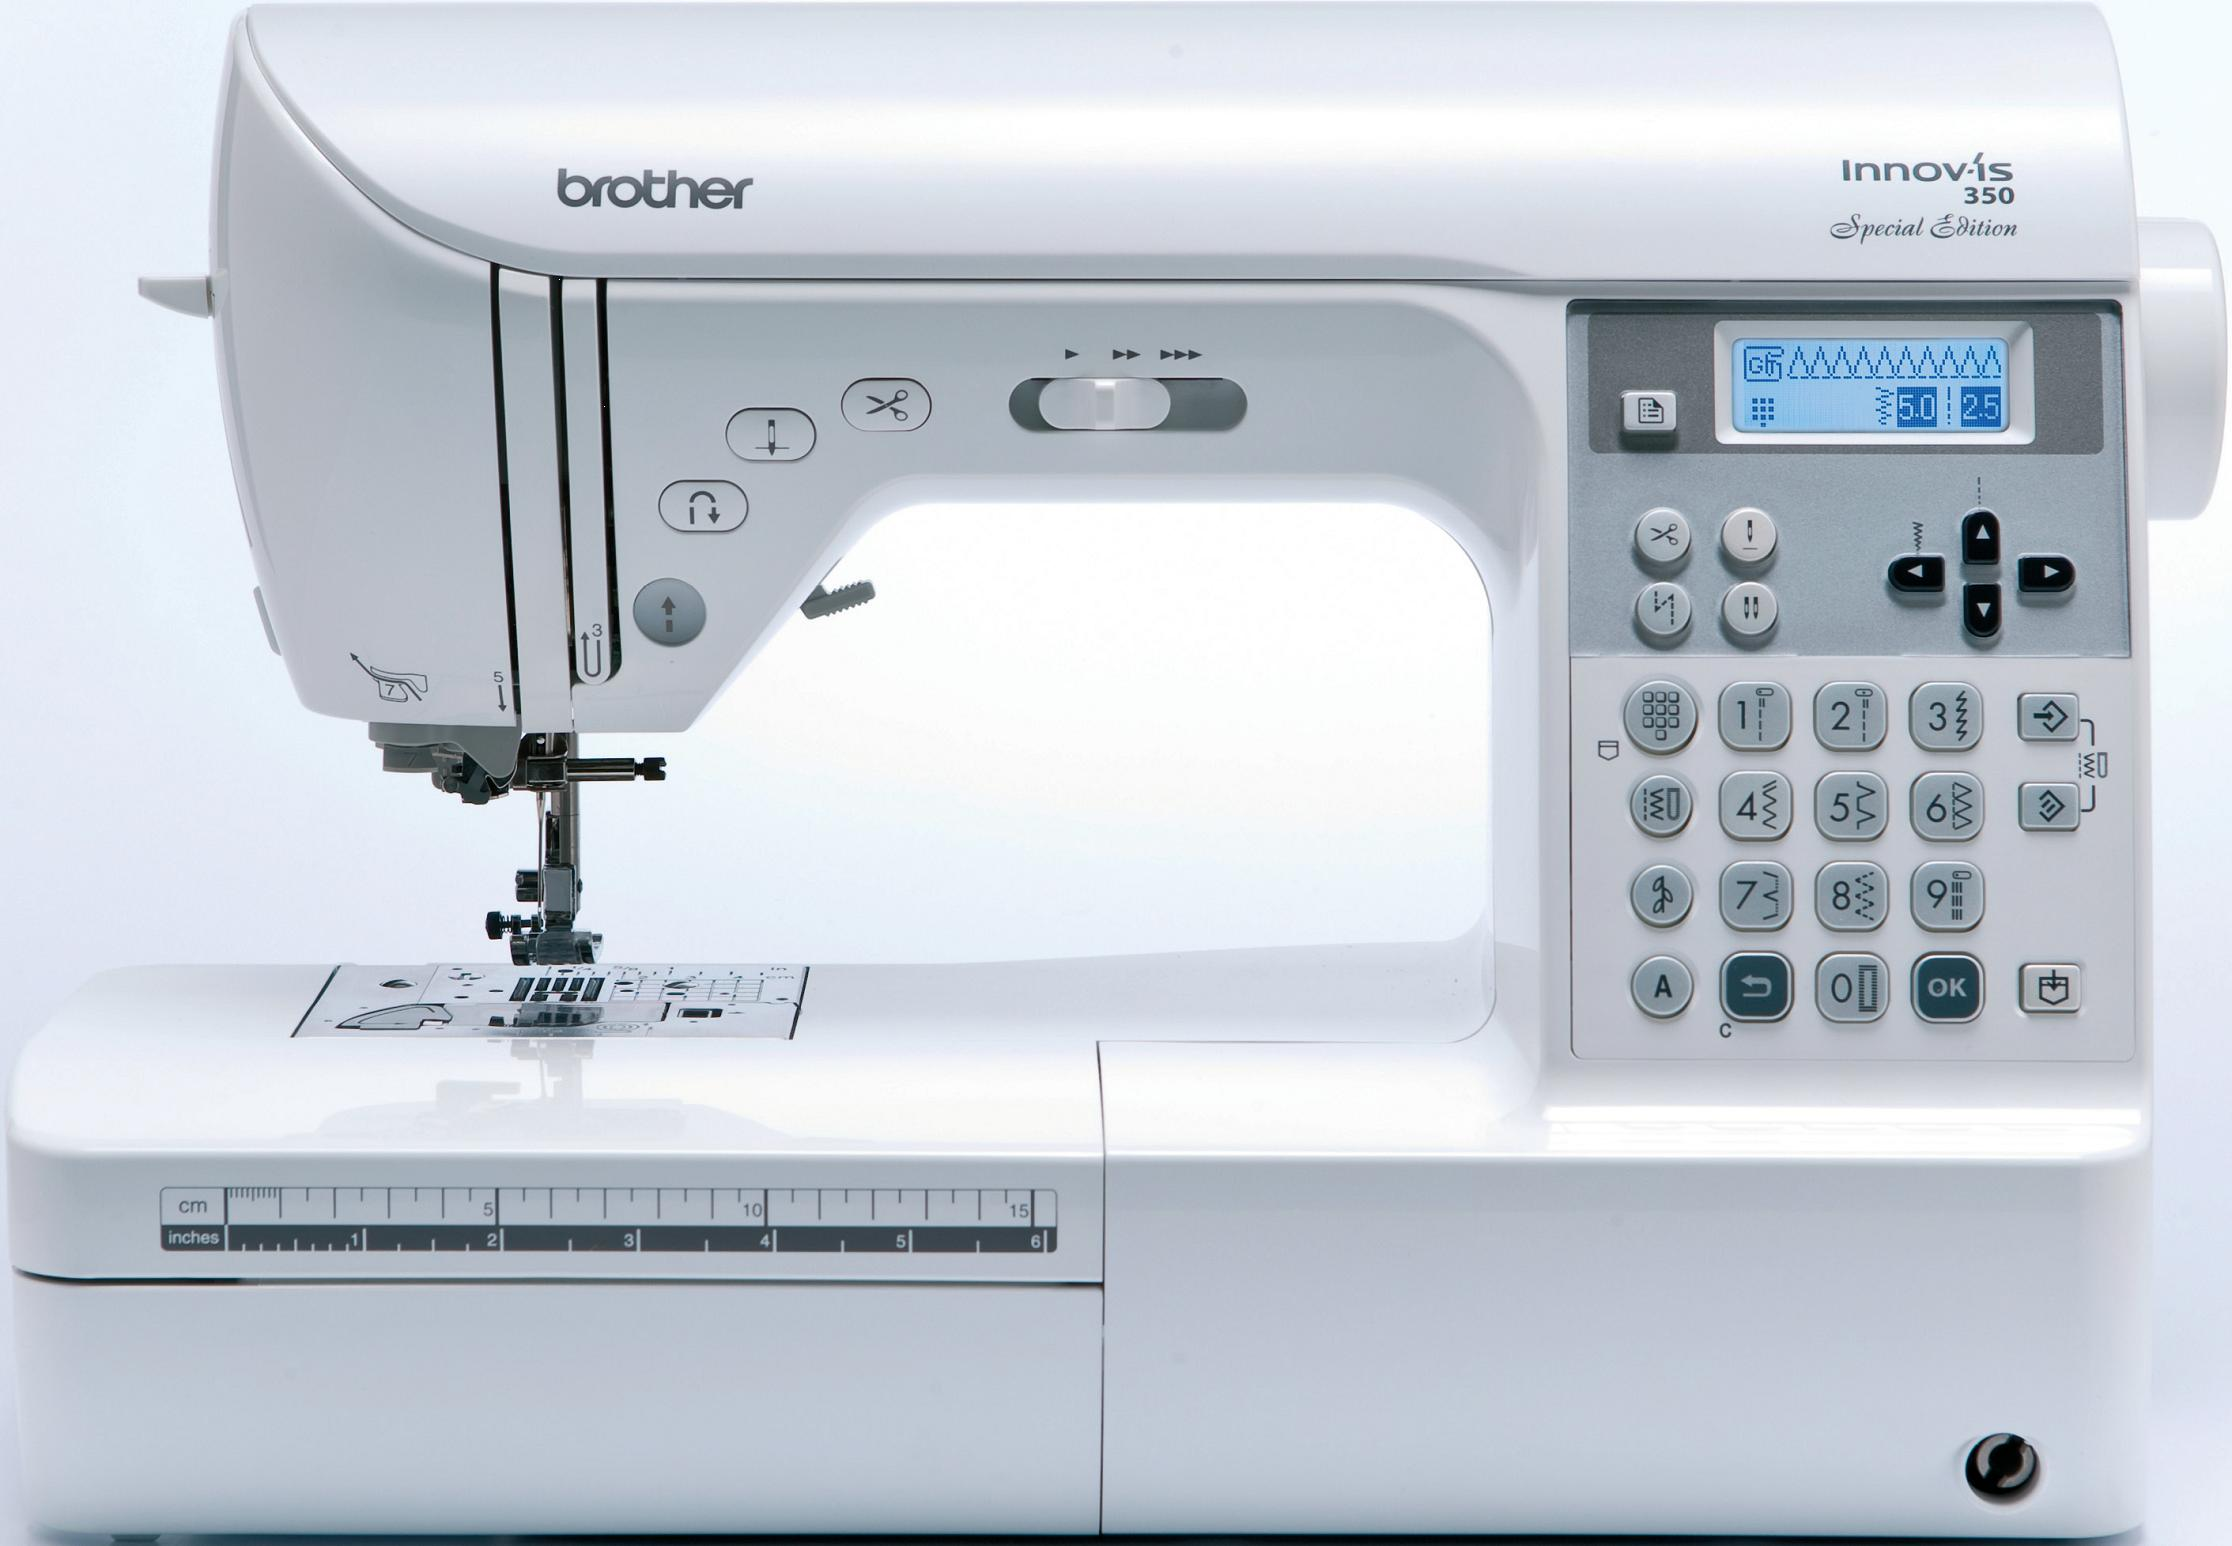 Brother Innov Is 350se Sewing Machine Reviews Sew Magazine